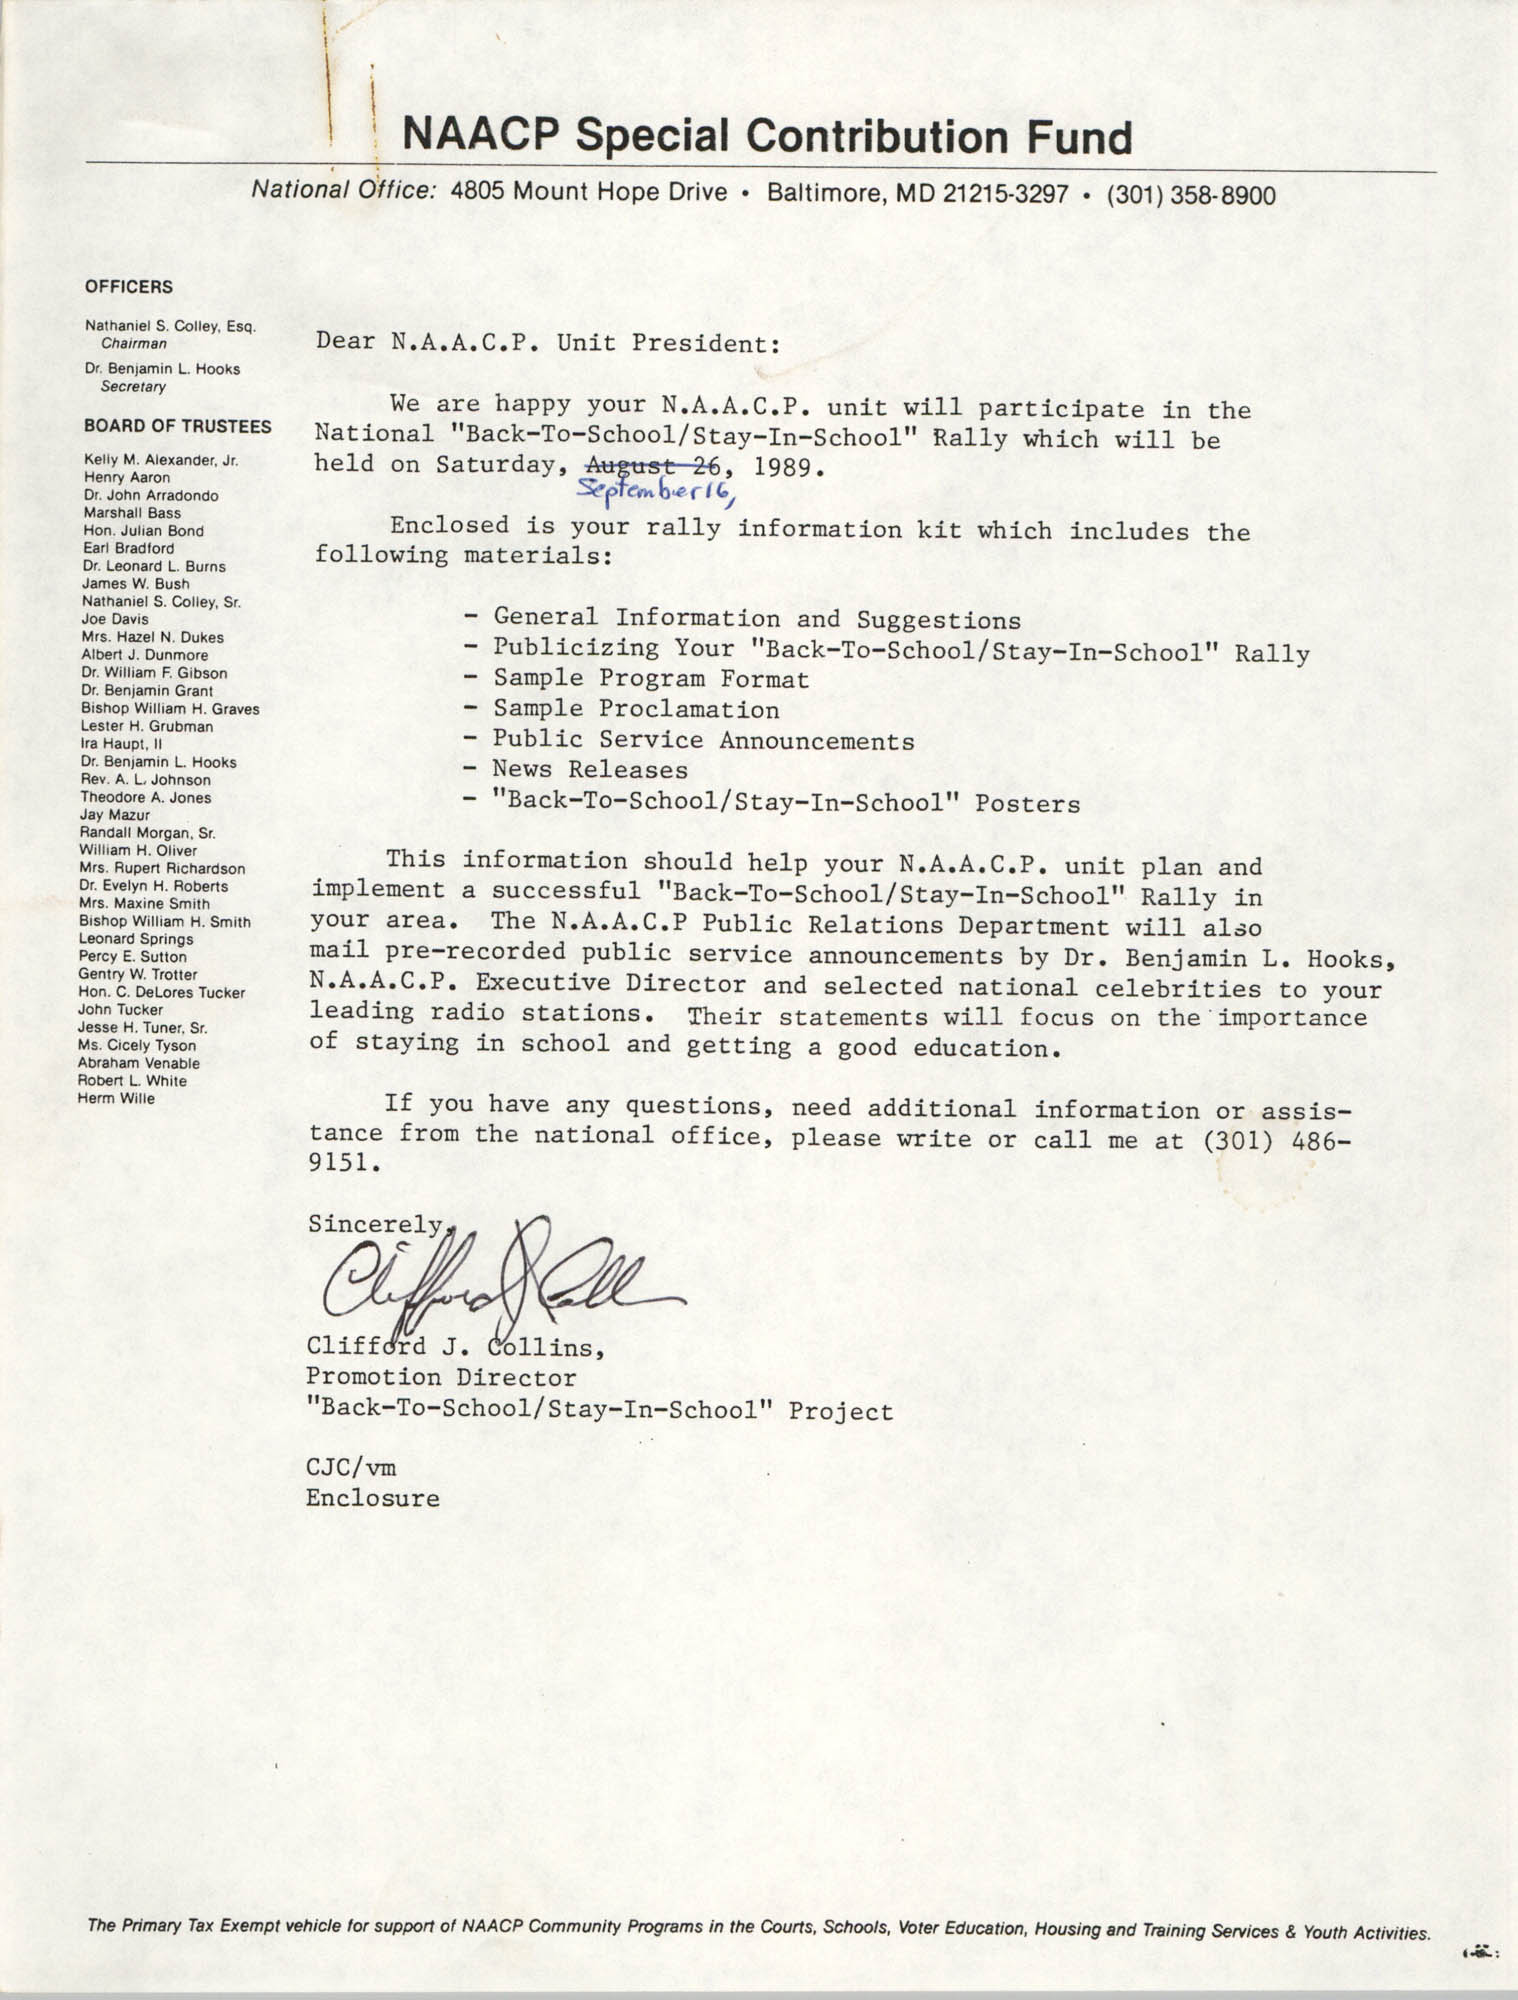 Letter from Clifford J. Collins to NAACP Unit President, Page 1